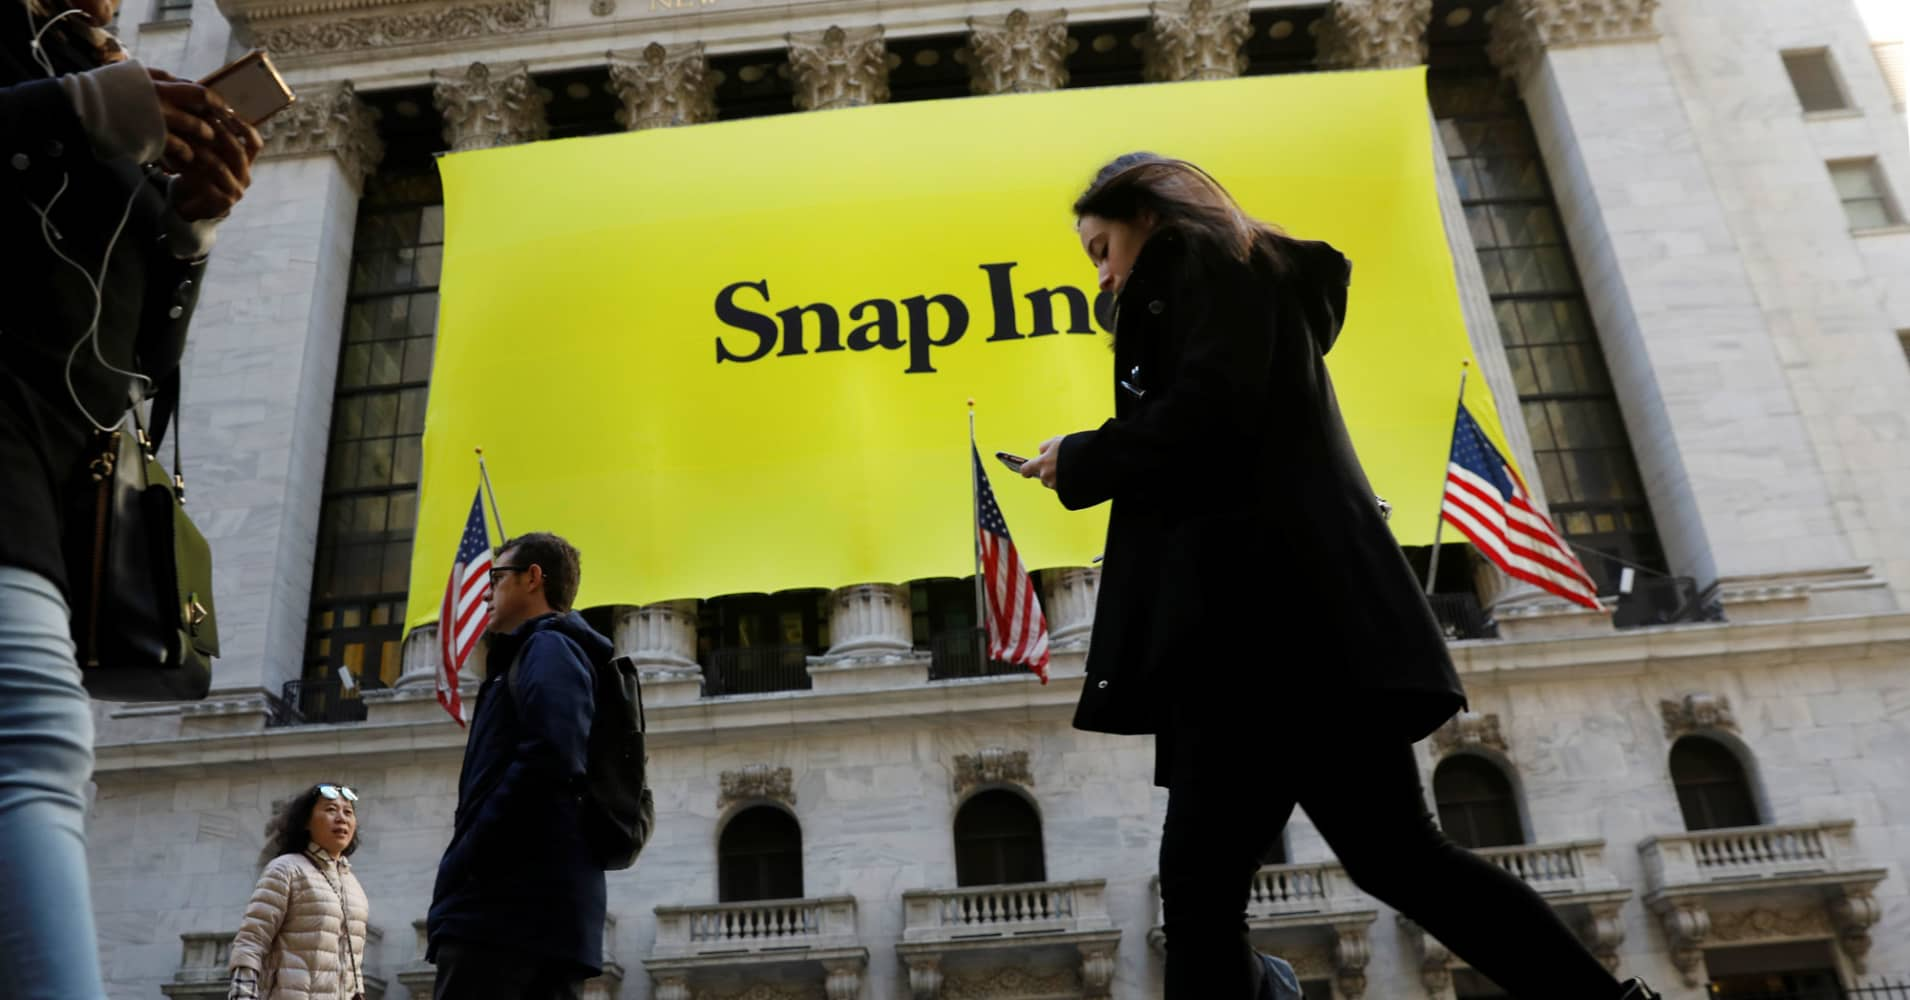 Snapchat Parent Snap Stock Price Rises After Ipo